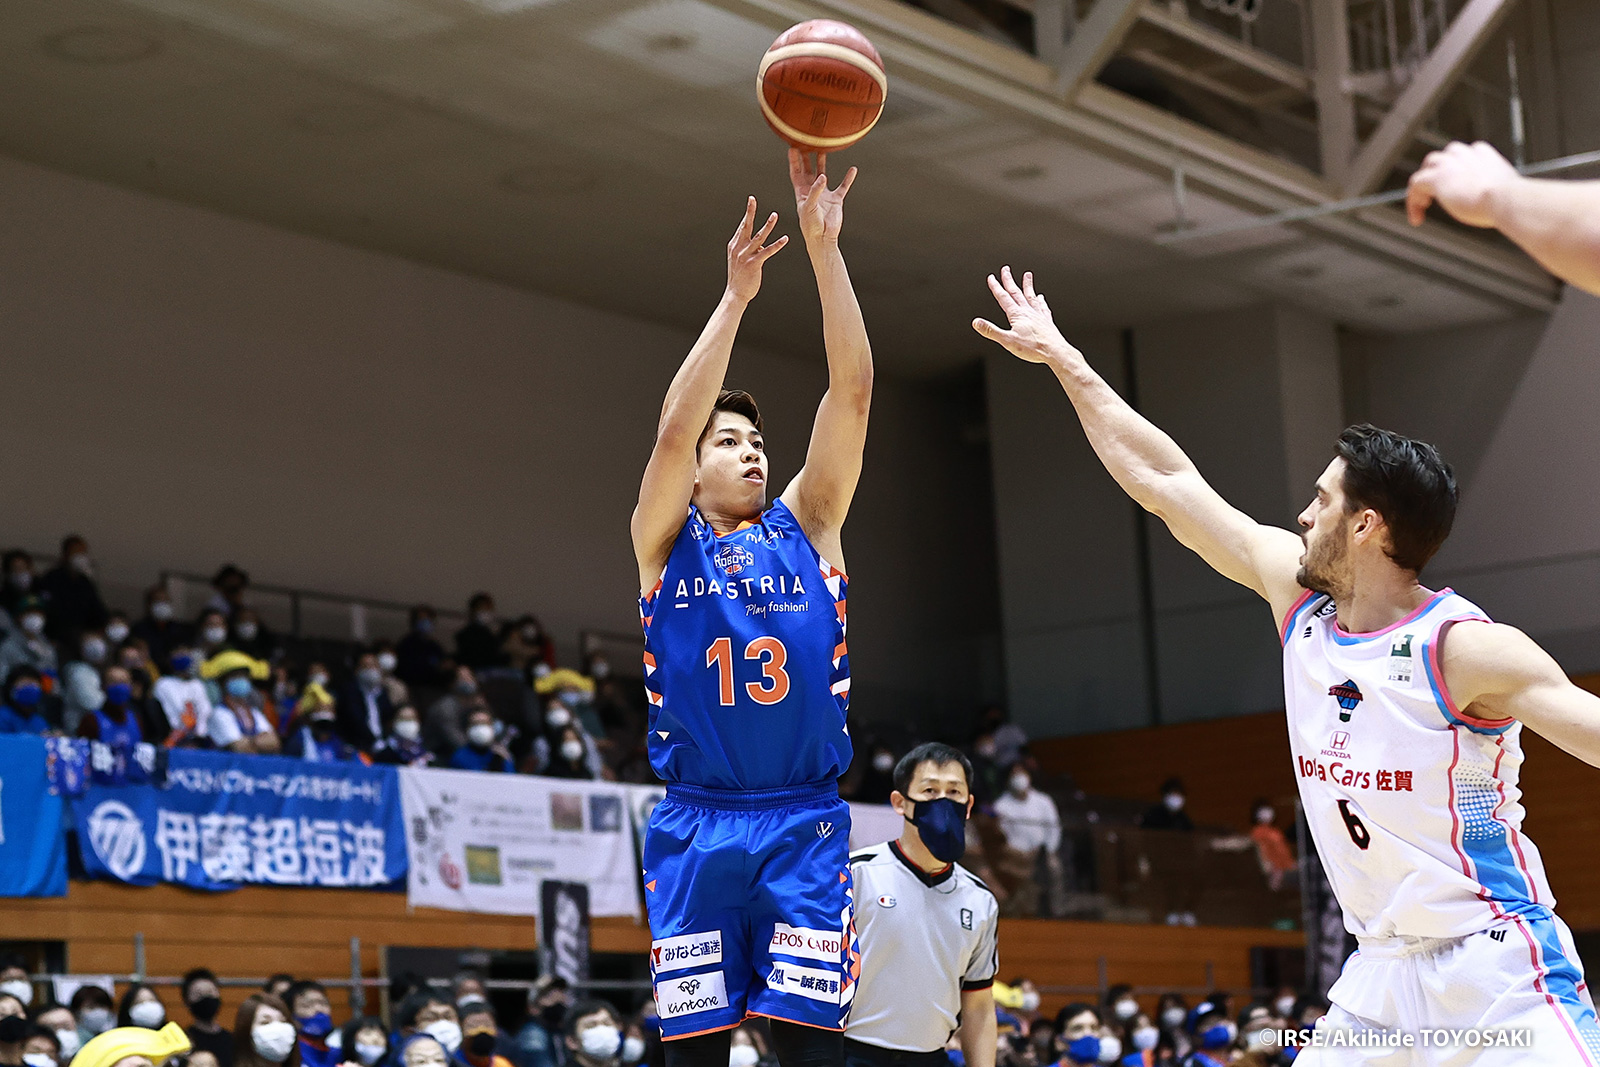 【AFTER GAME】 2020-21第23節 佐賀戦(2/27~28)~違う顔を見せて連勝。我慢ができるチームの強み~